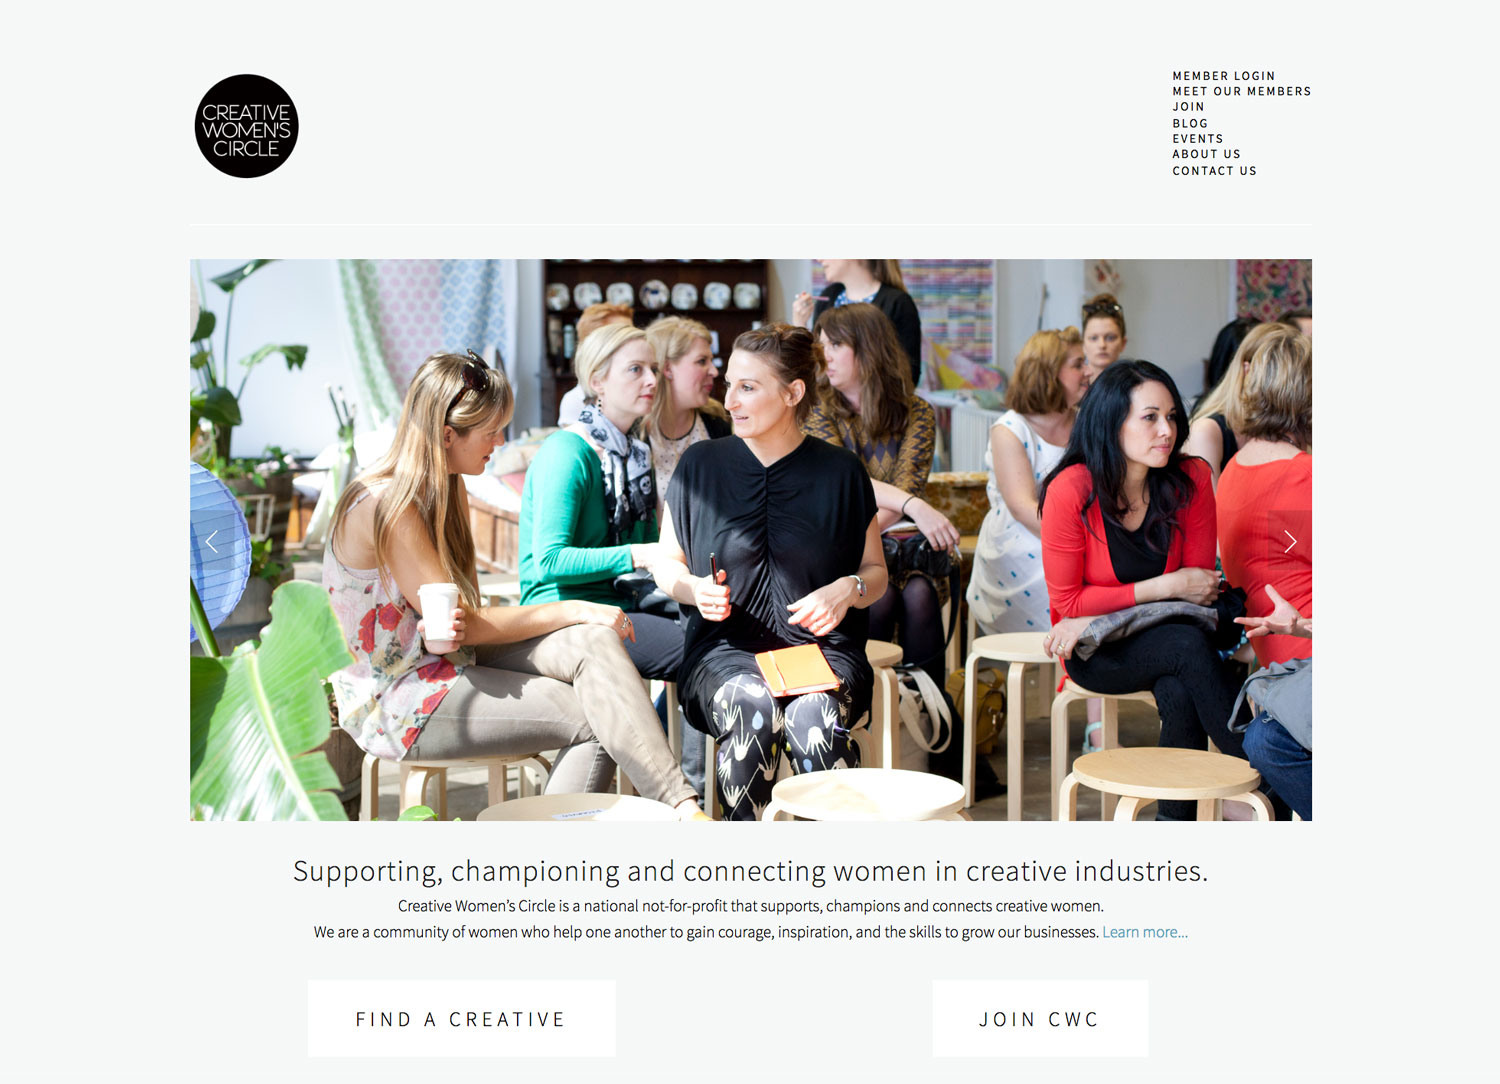 Squarespace website for Creative Women's Circle, created by CWC board members